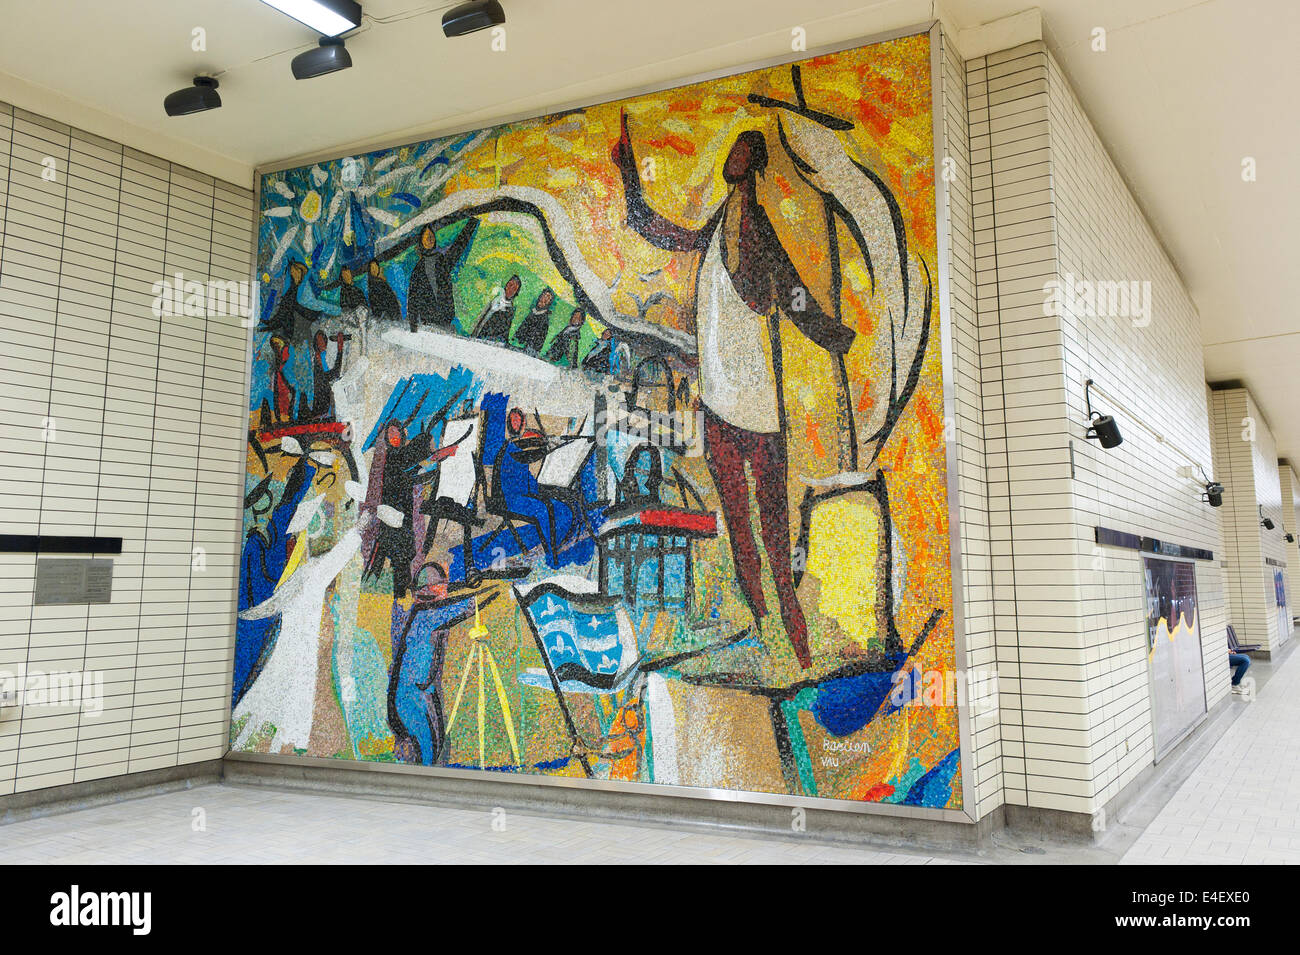 Ceramic Mural Stock Photos Ceramic Mural Stock Images Alamy